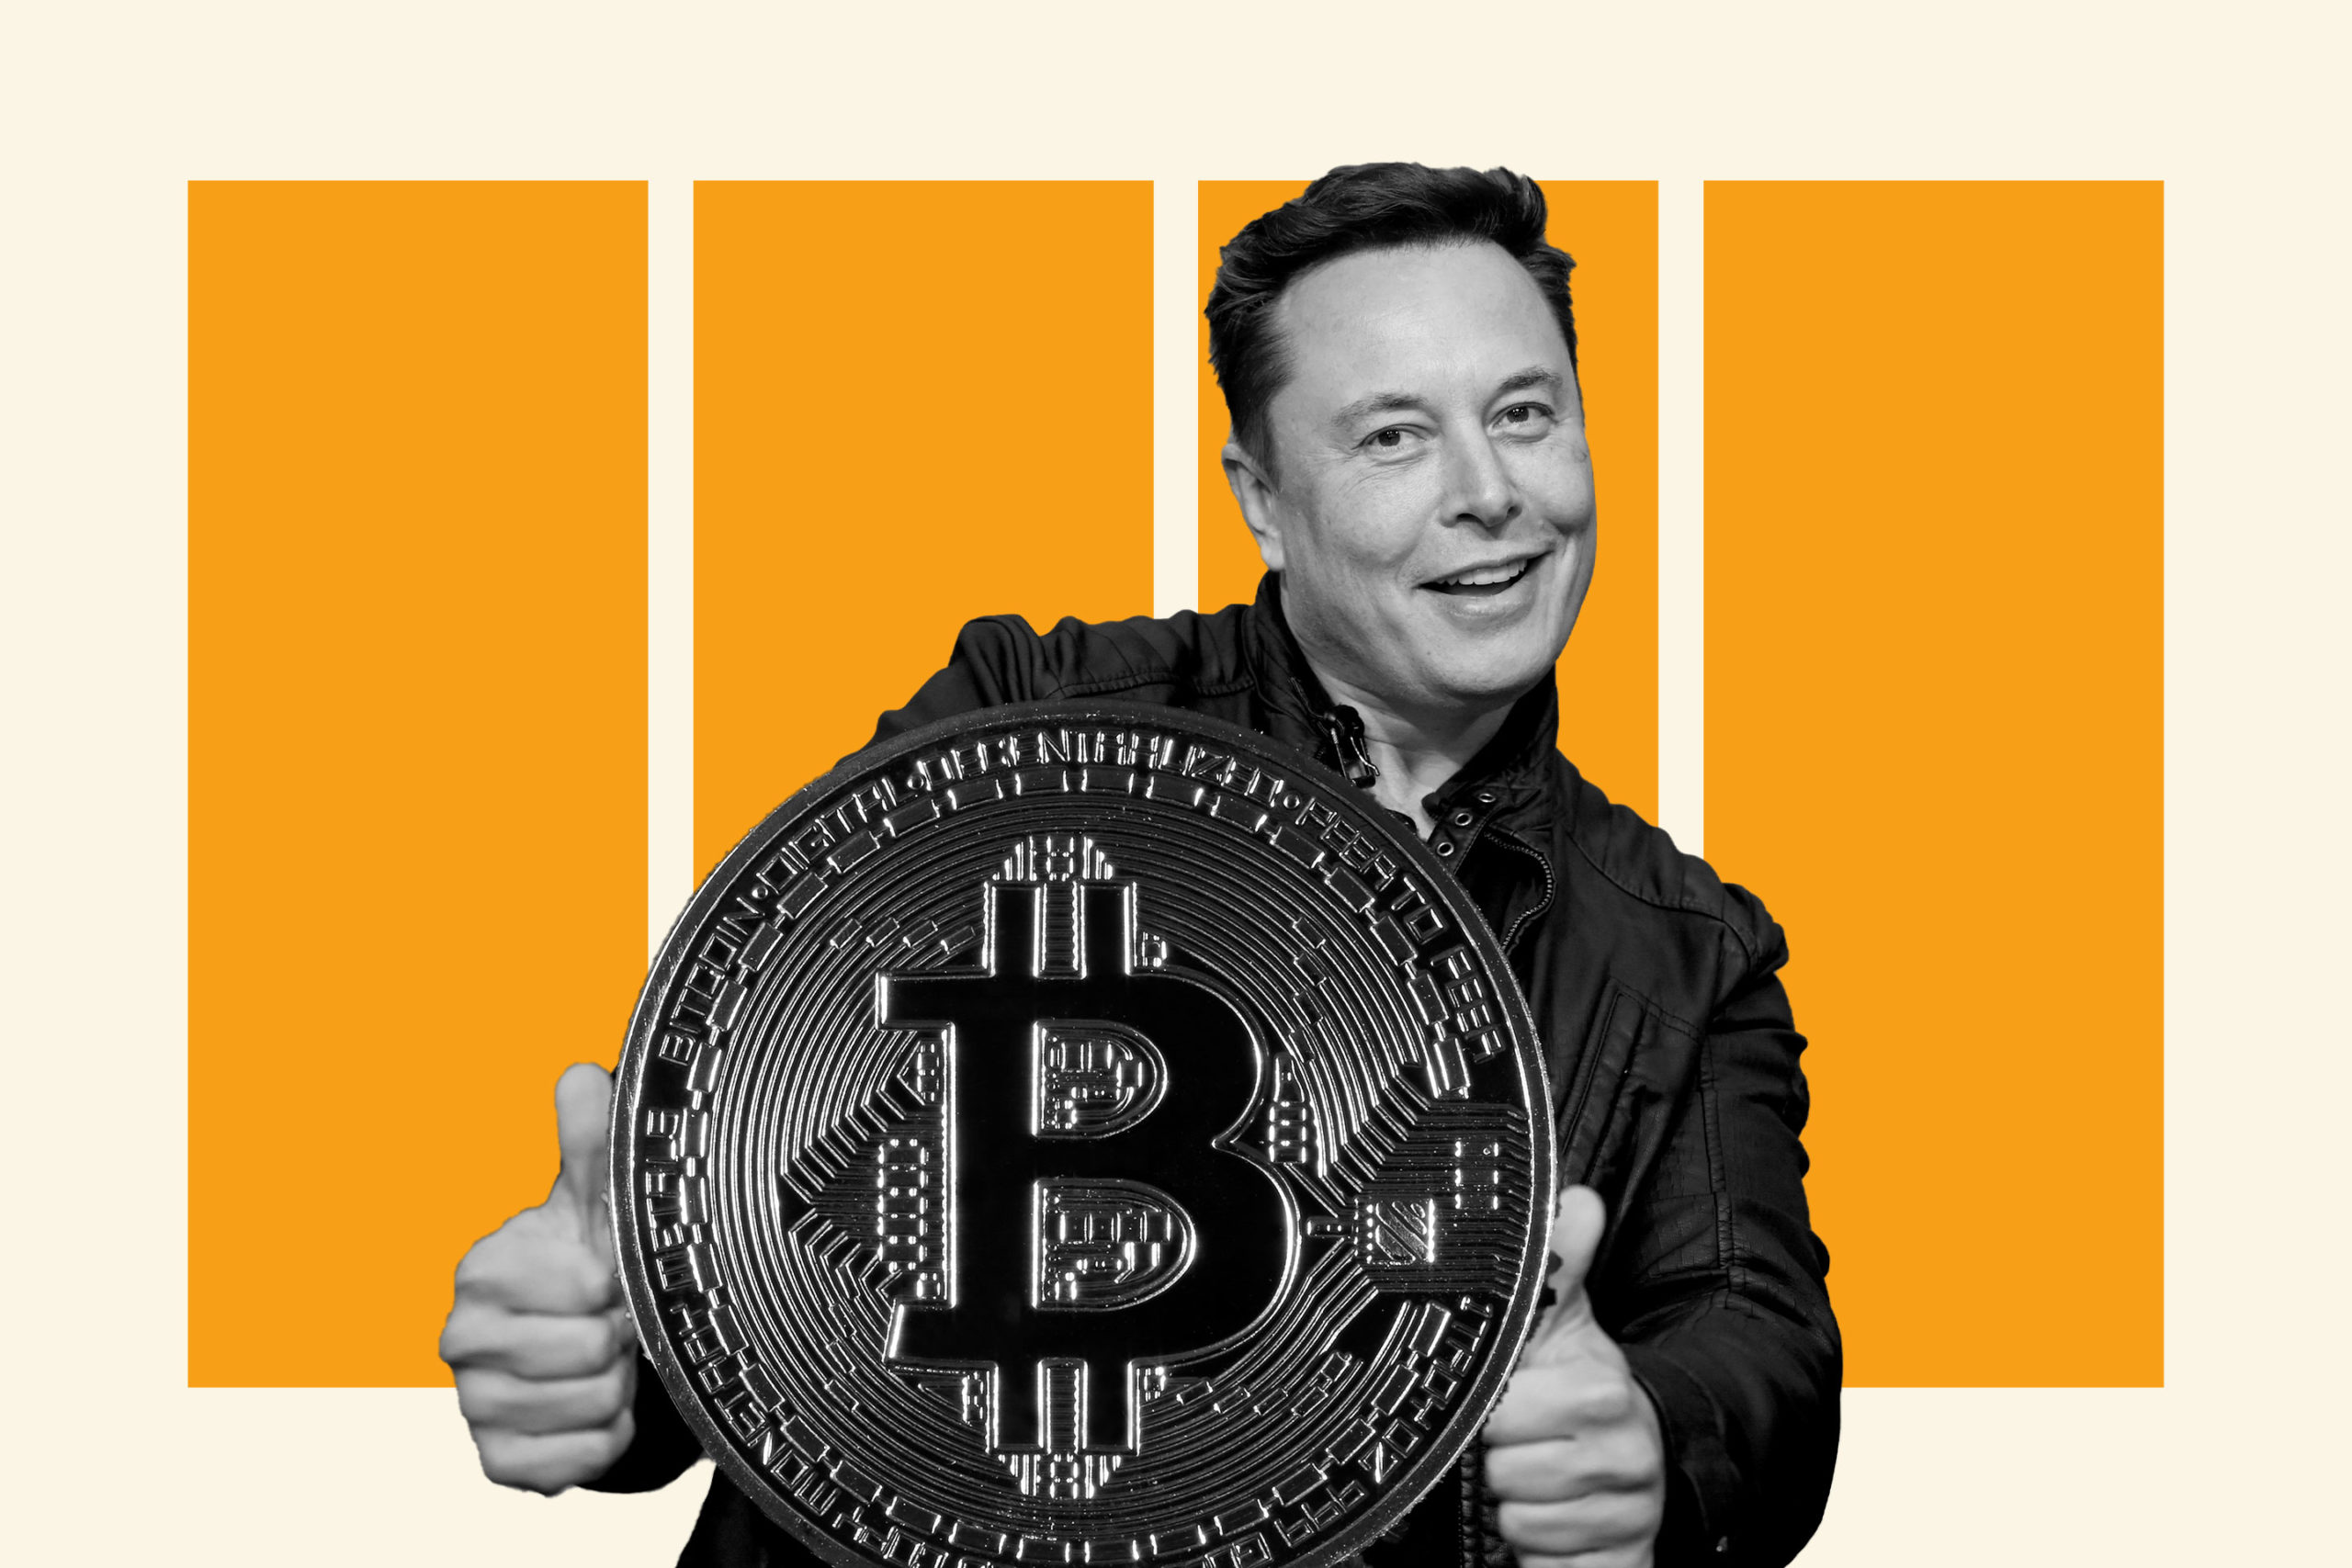 Elon Musk has tweeted again about bitcoin. The market reacted by falling